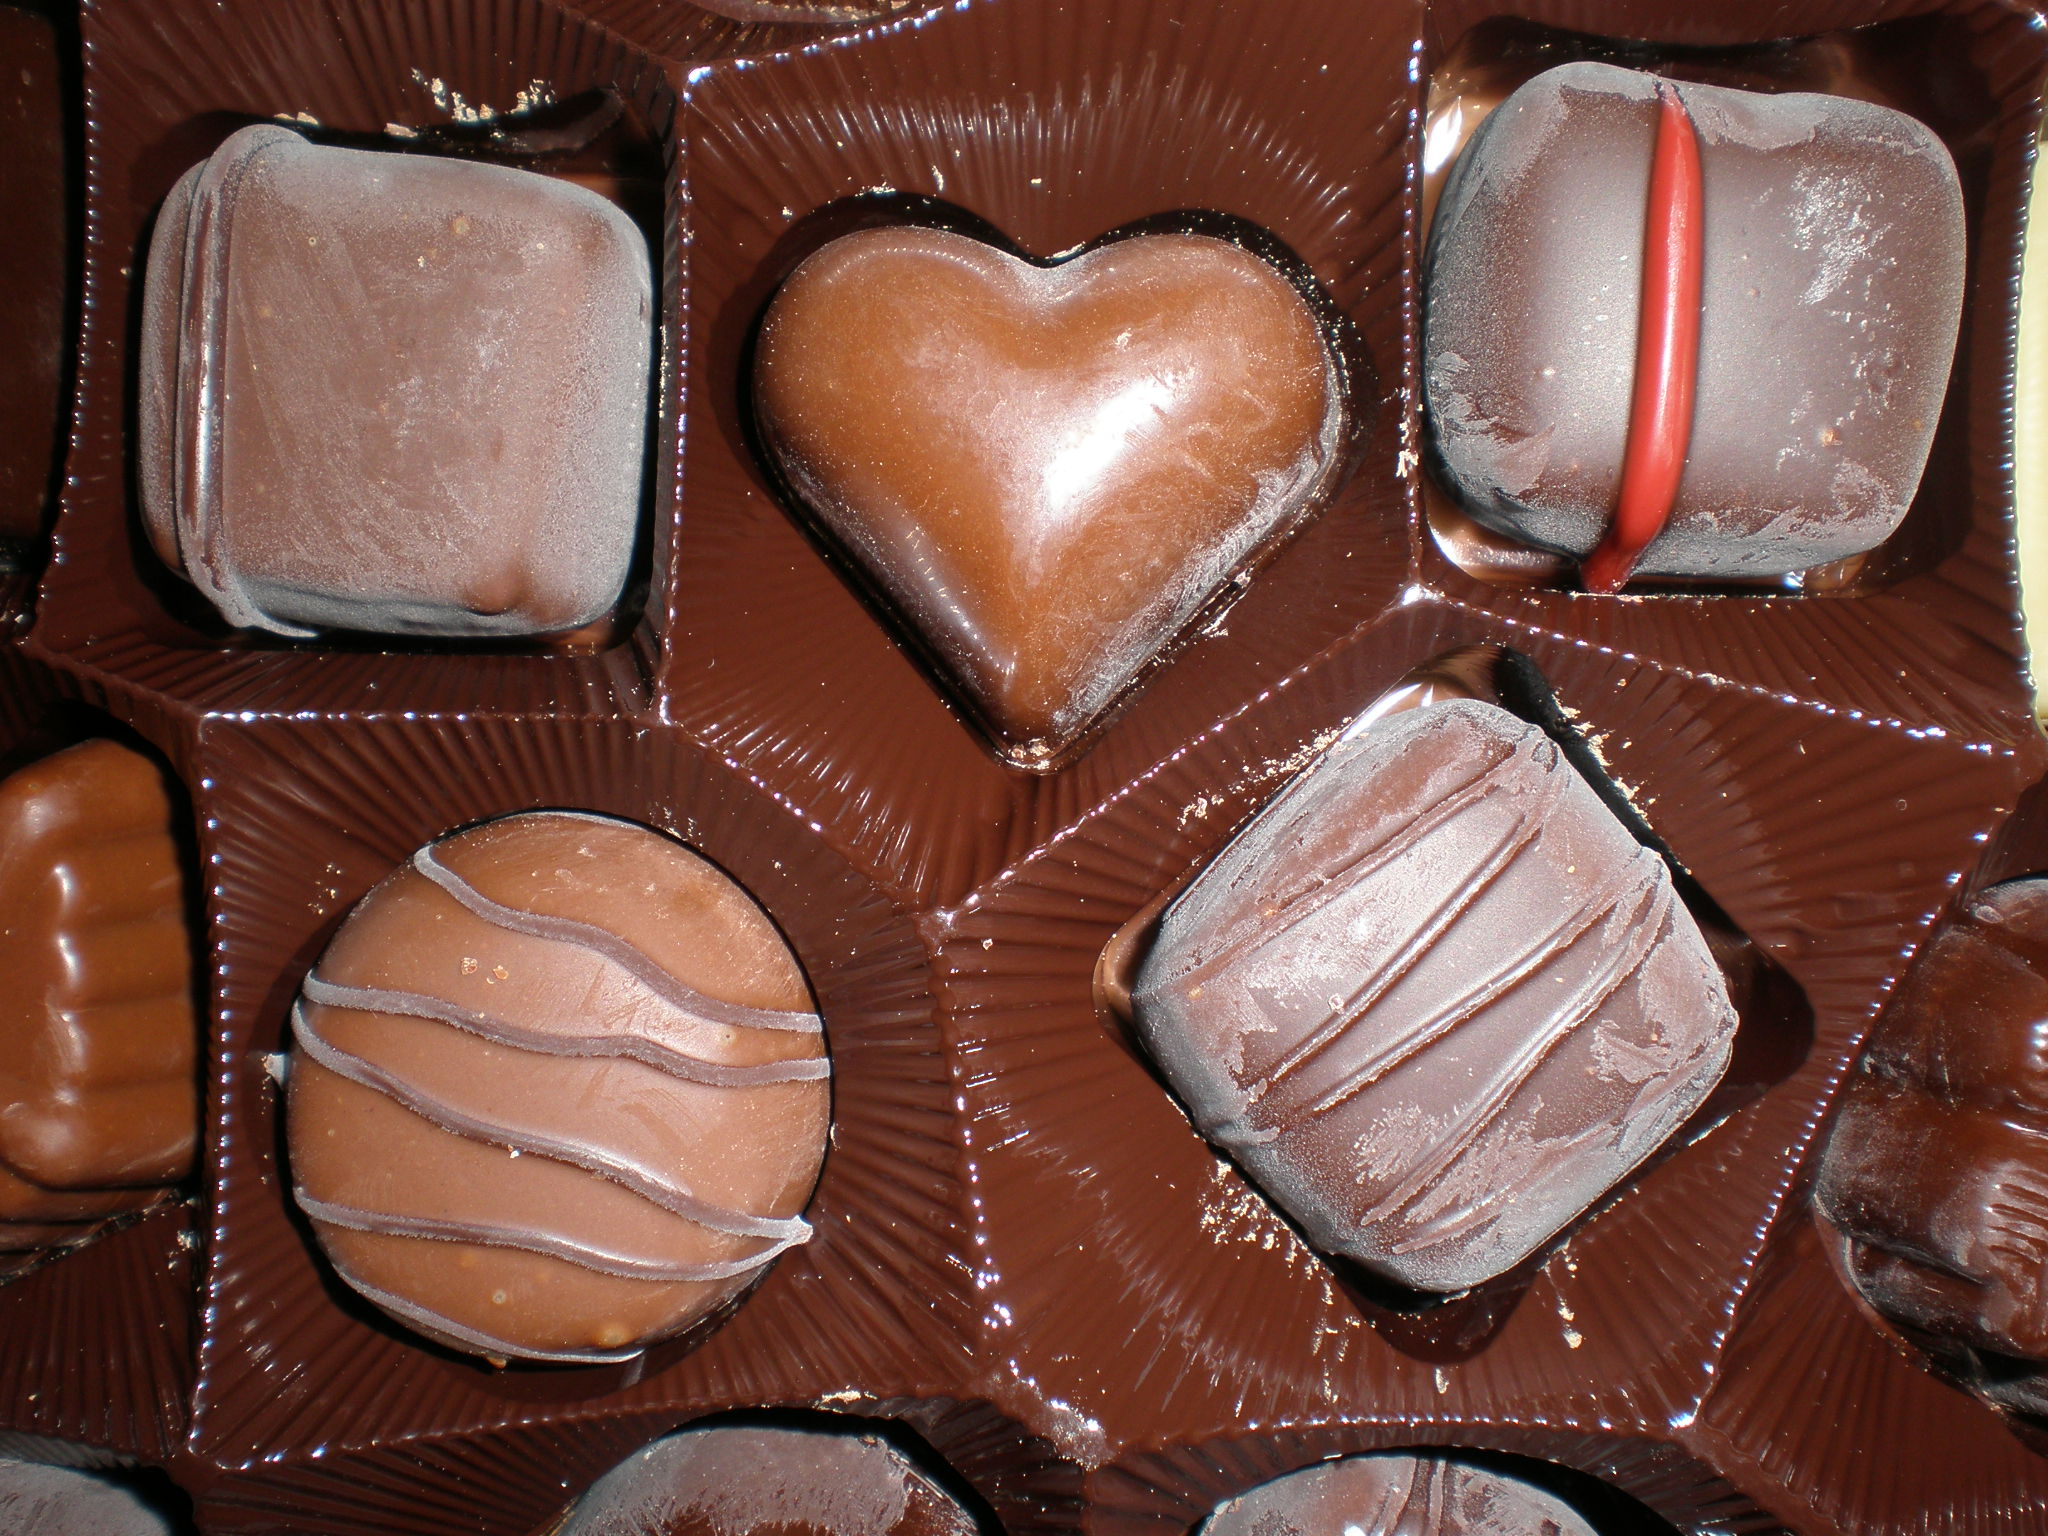 File:Belgian chocolates assortment.JPG - Wikimedia Commons